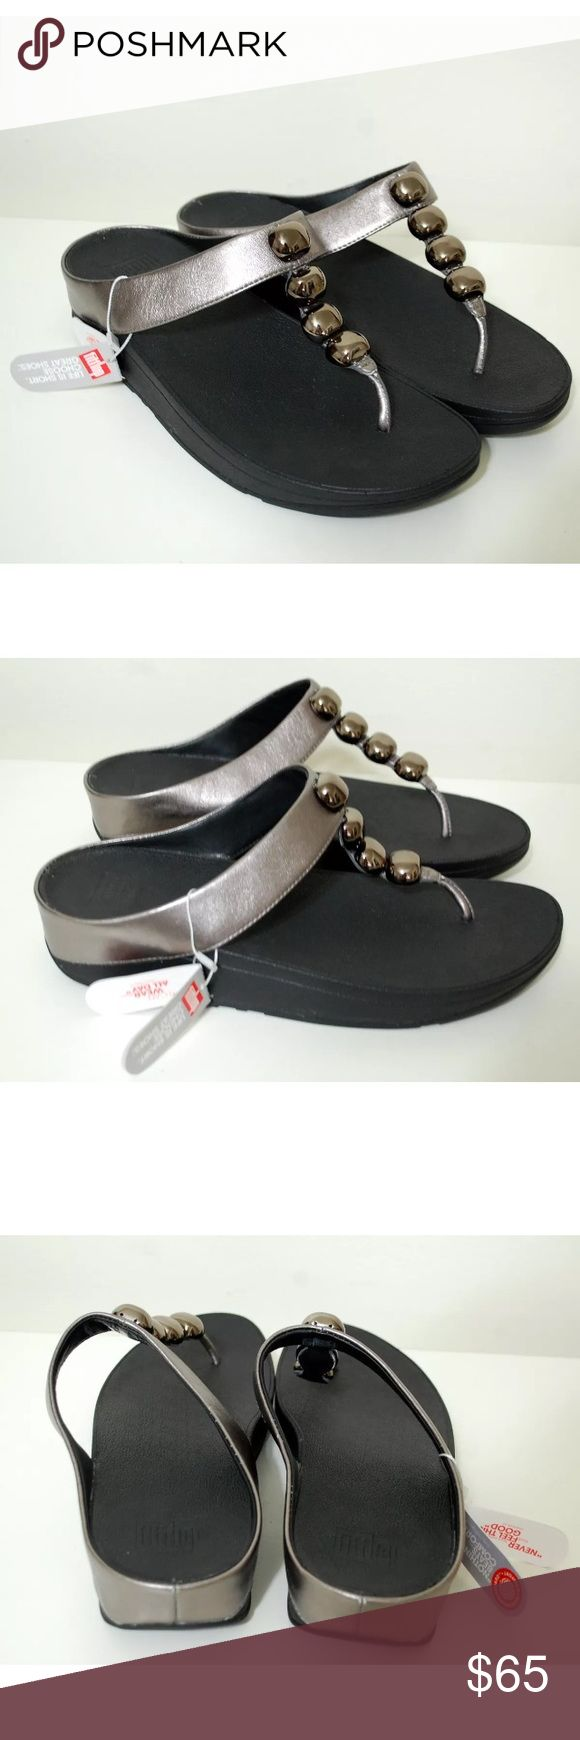 Fitflop rola Pewter Sandals Fitflop Rola Sandals  Color- Pewter Size-11  Has some writing on bottoms otherwise new with tags. Fitflop Shoes Sandals